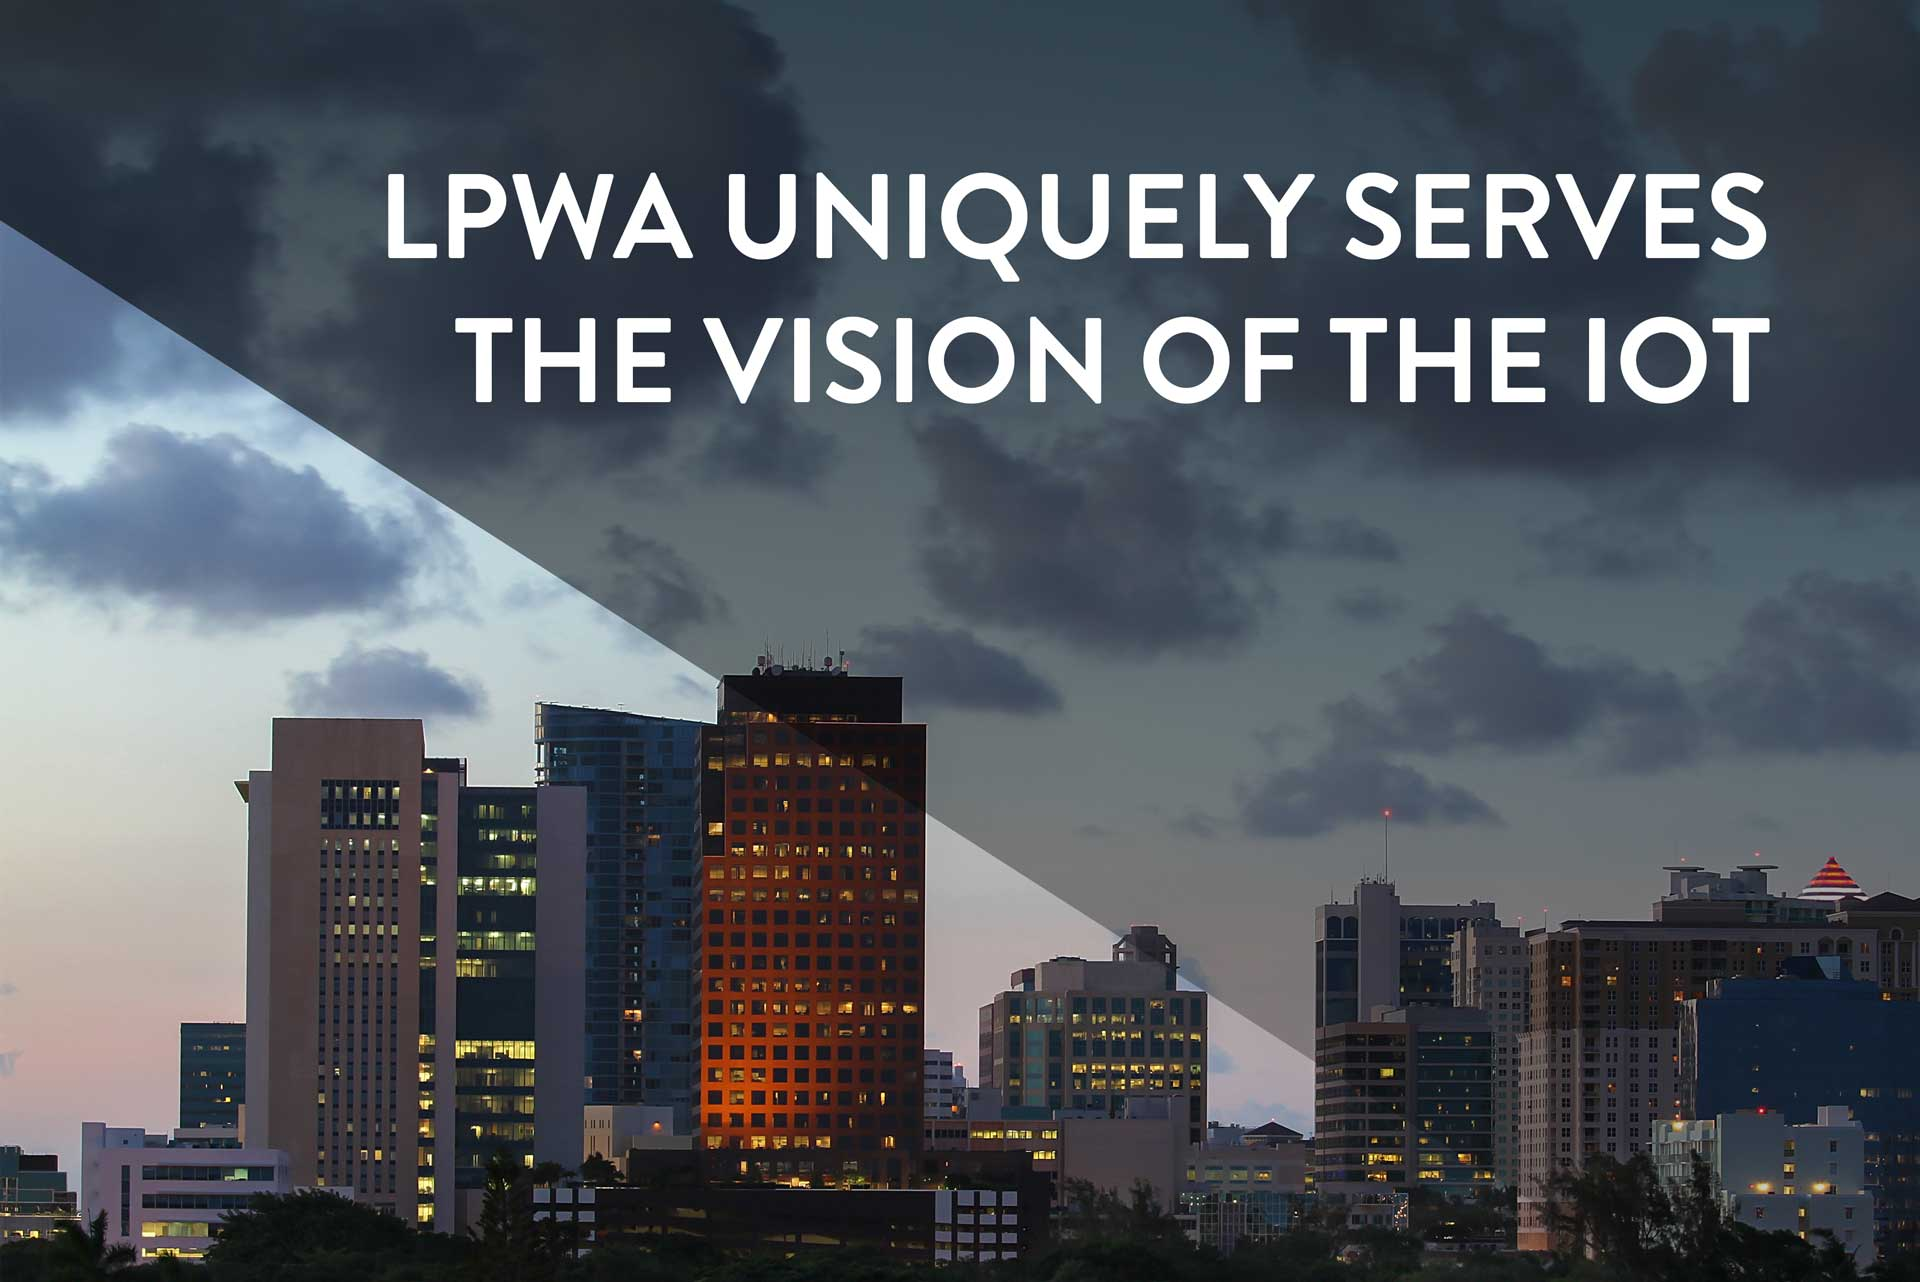 LPWA Uniquely Serves the Vision of the IoT